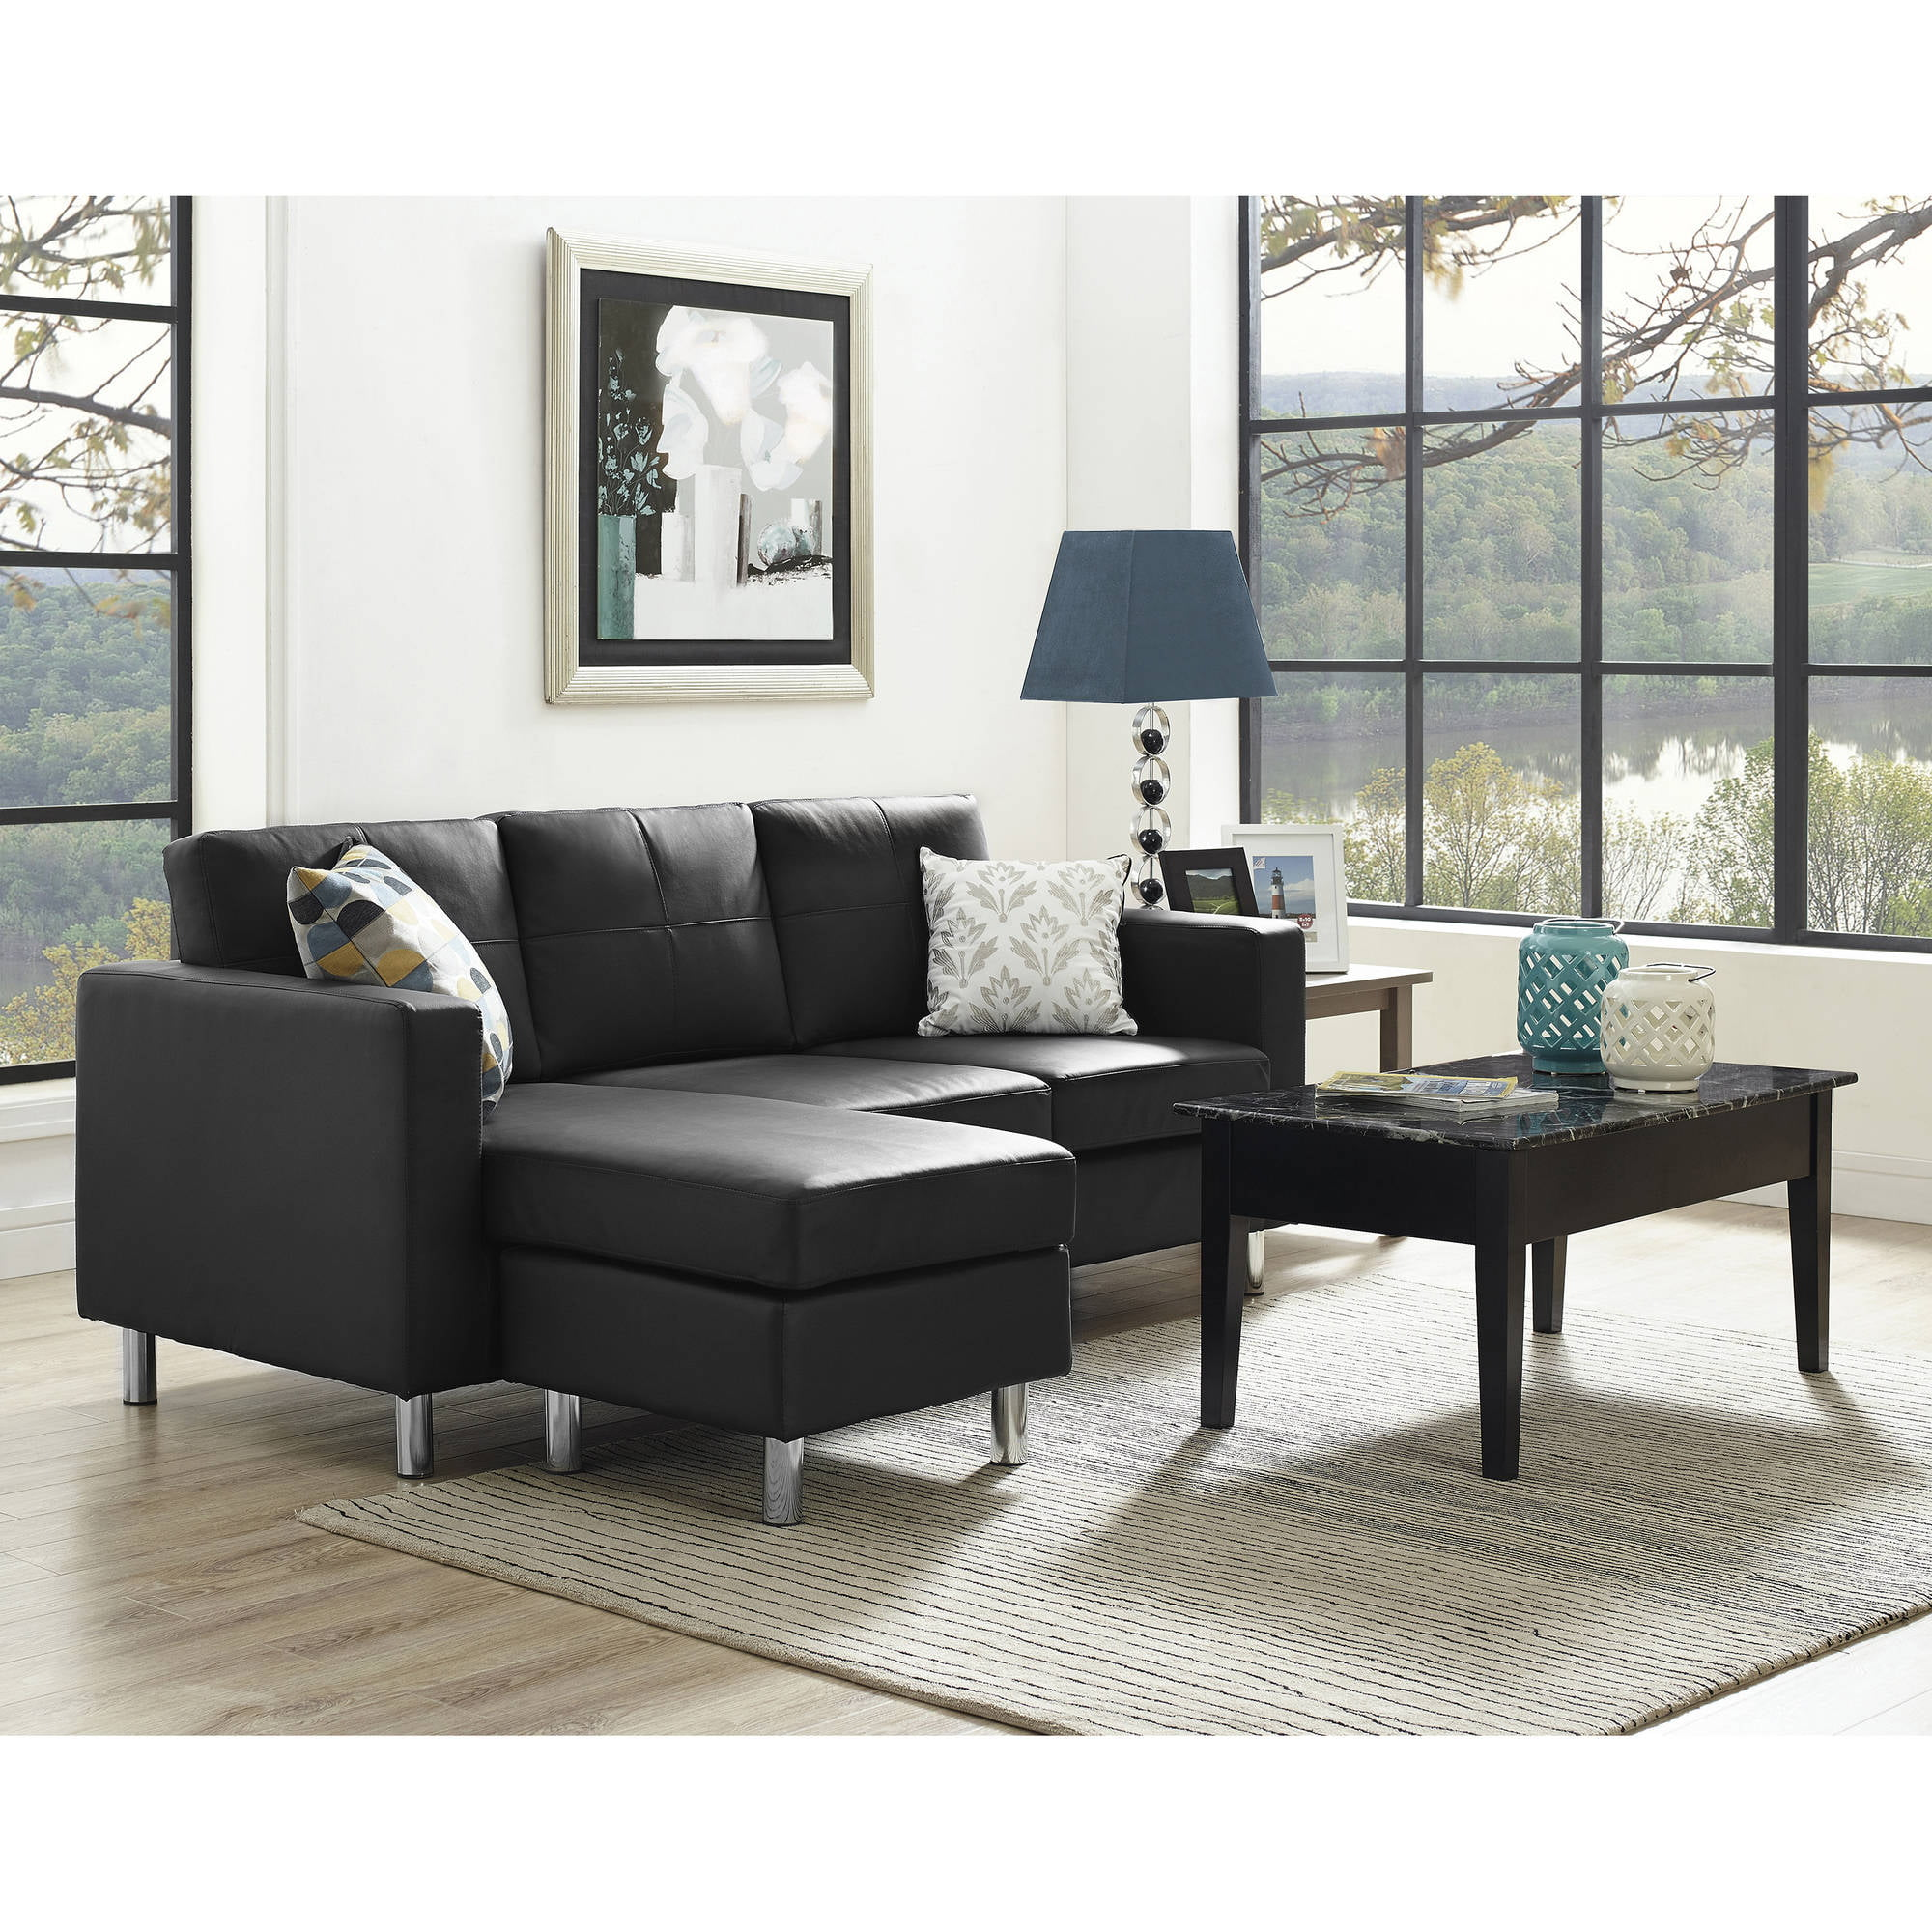 living room chair sets.  Living Room Furniture